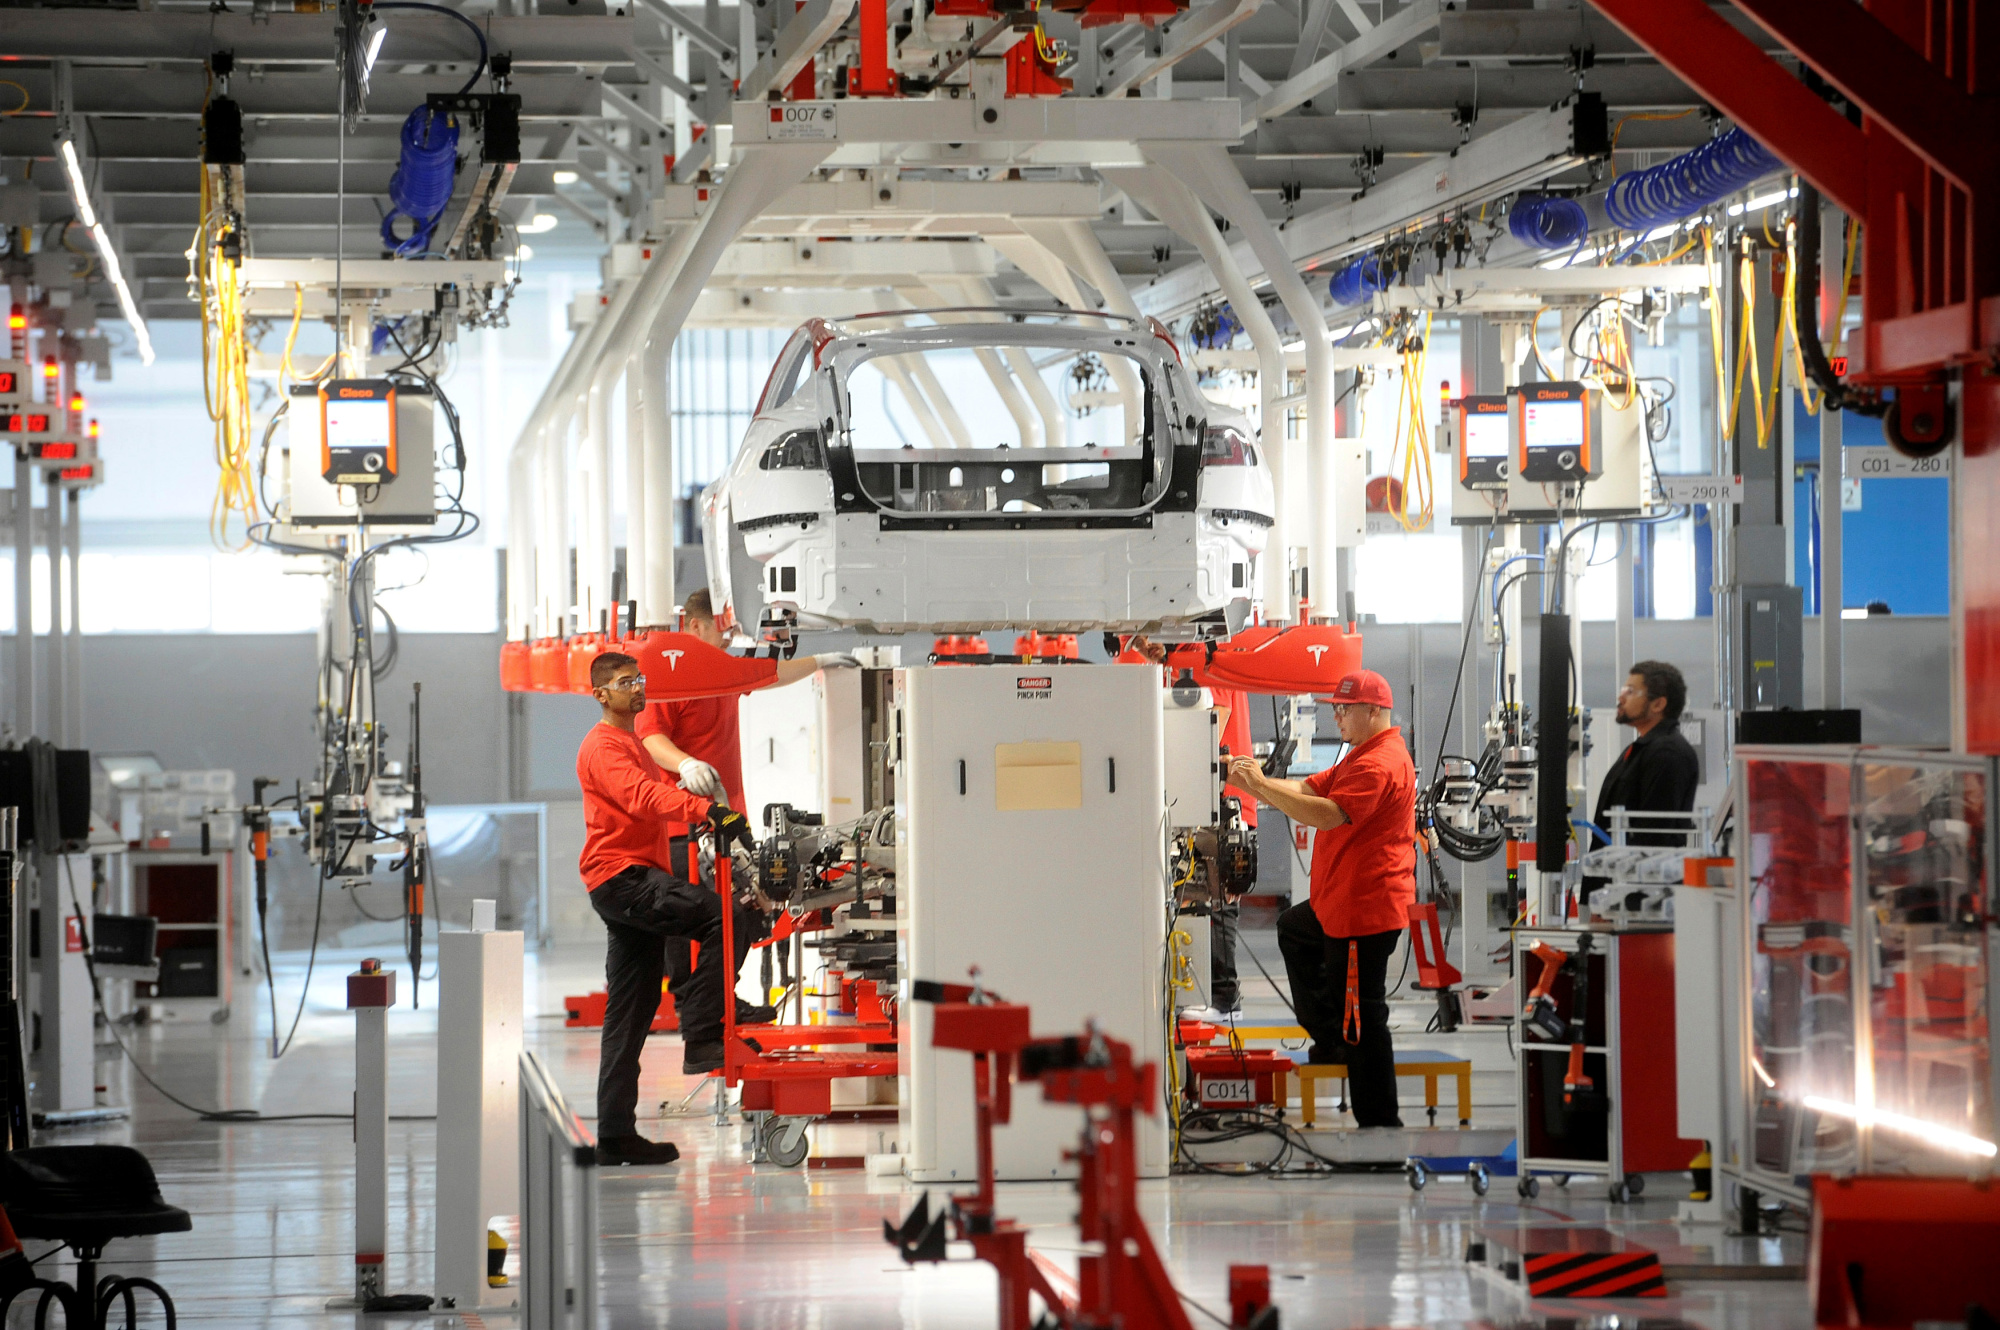 Tesla workers examine a Model S used for training and tool calibration at the company's factory in Fremont, California, in June 2012. | REUTERS